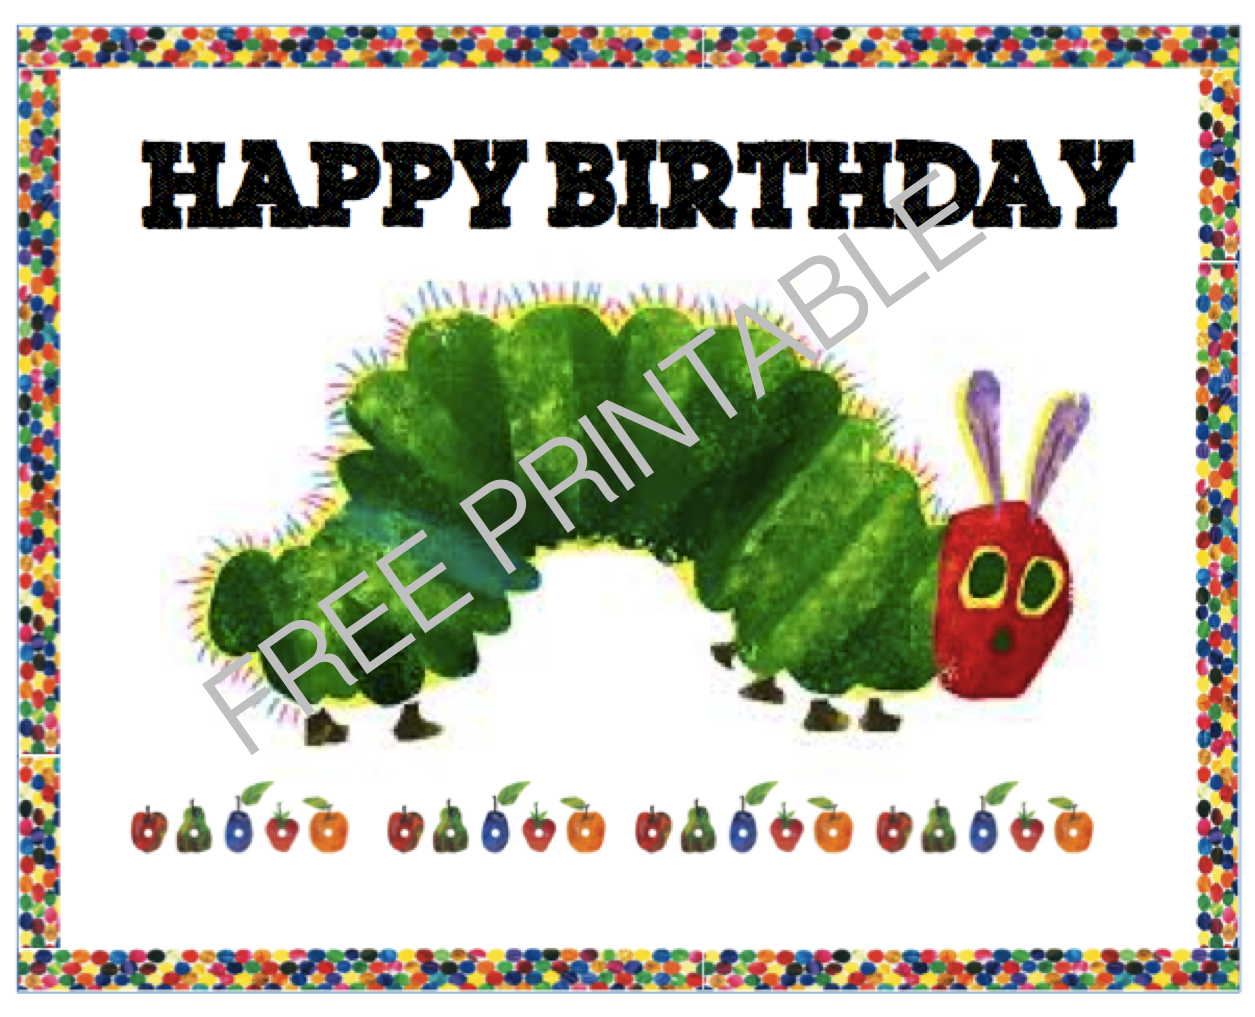 Free printable the very hungry caterpillar birthday sign free printable the very hungry caterpillar birthday sign bookmarktalkfo Image collections